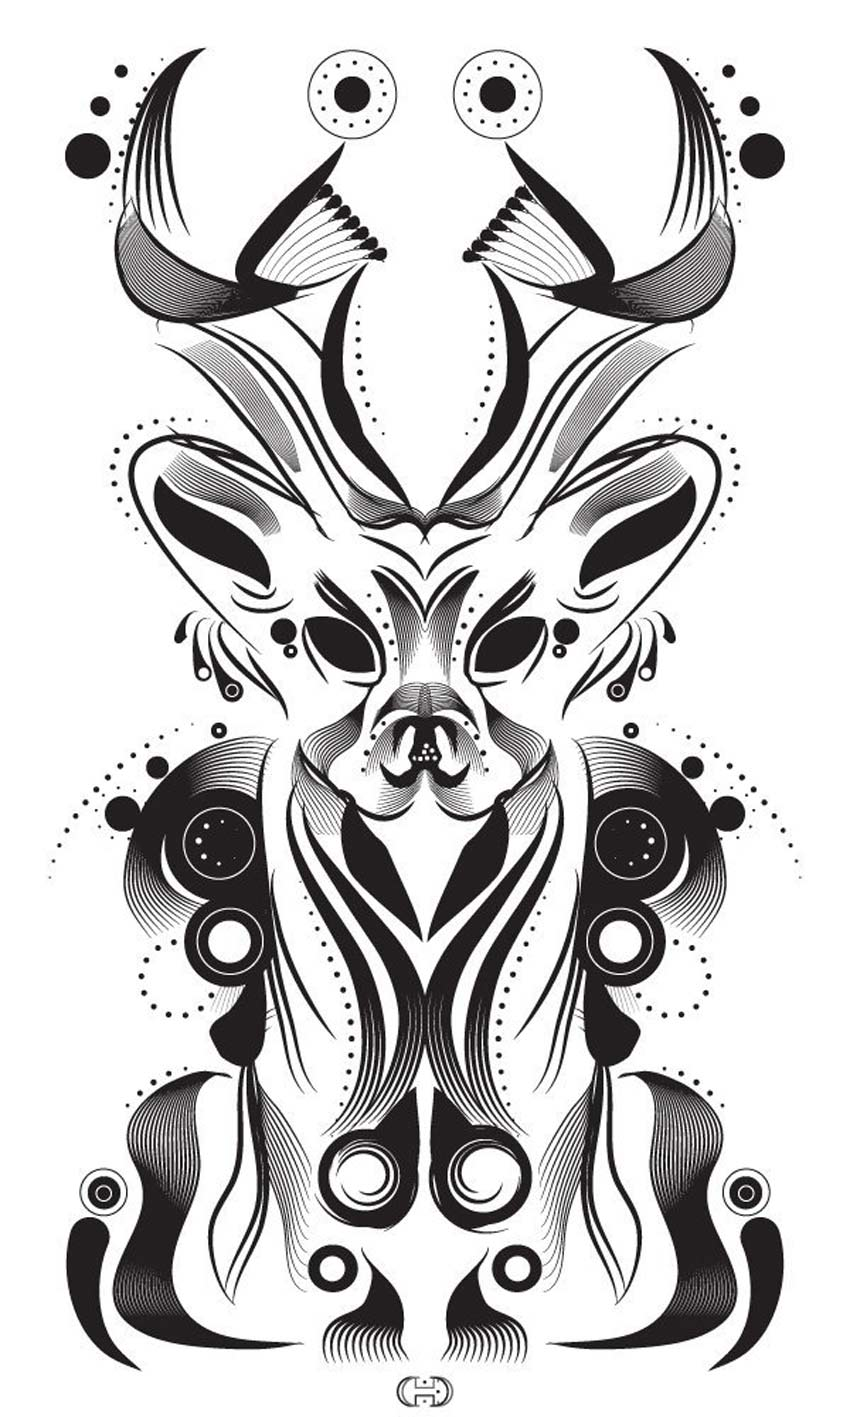 Stylish Deer Illustration Adobe Illustrator Tutorial